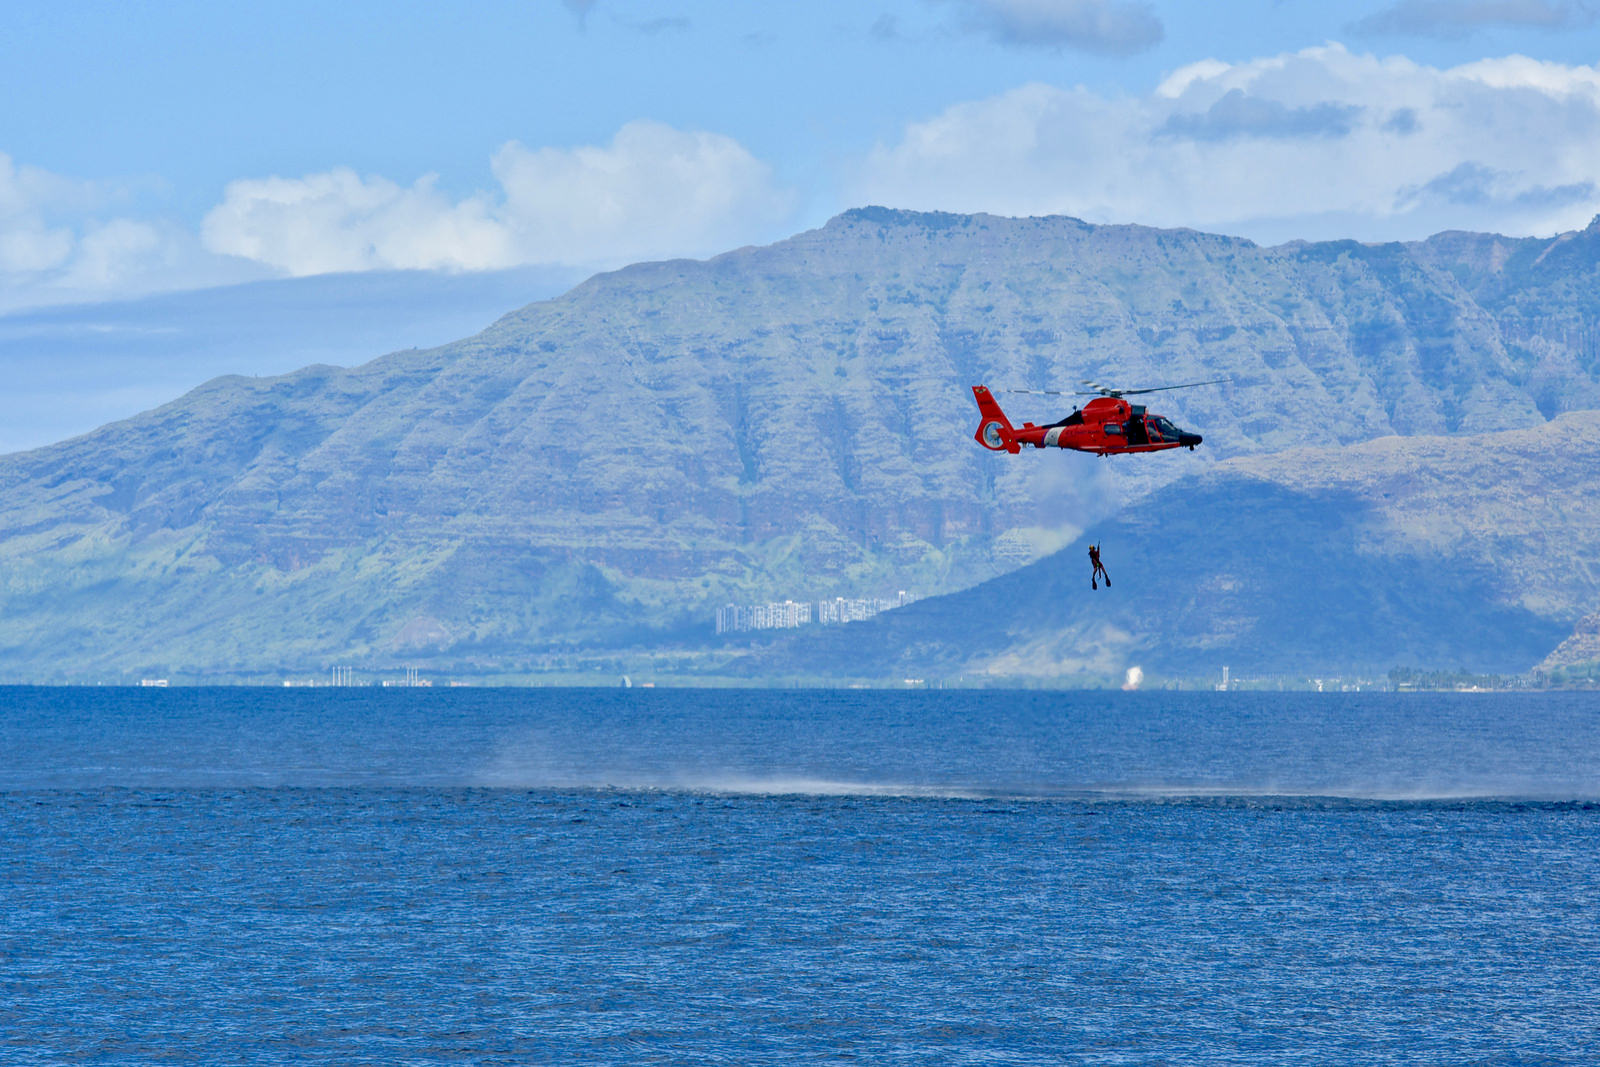 The crew of an Air Station Barbers Point MH-65 Dolphin helicopter raises their rescue swimmer during a search-and-rescue exercise in the vicinity offshore from Ko'olina to Kahe Point, Oahu, on Nov. 29, 2018. (Lt. j.g. Joshua Martin/Coast Guard)